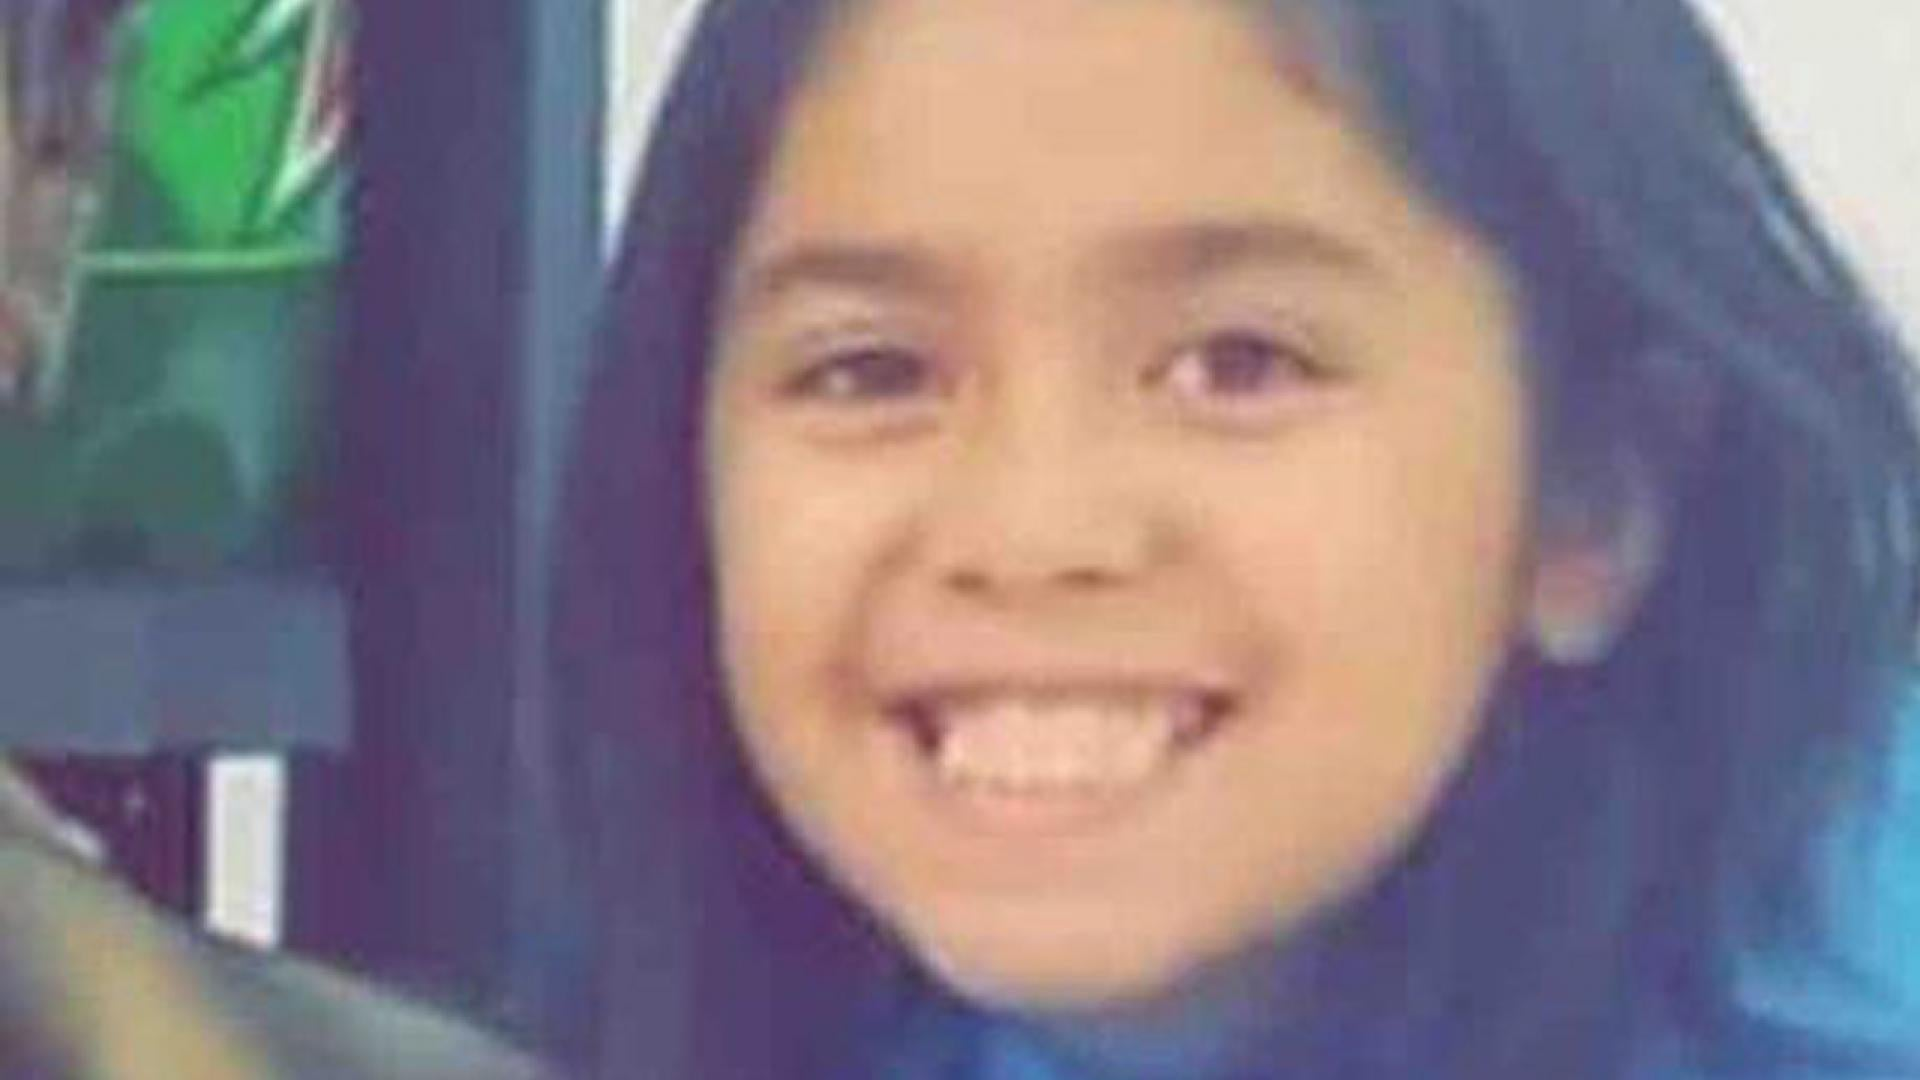 Emma Valentina Hernandez was in an alley near Central Avenue and Smart Street in southwest Detroit Monday when three pit bulls belonging to her neighbor dragged her to the ground and began mauling her neck.